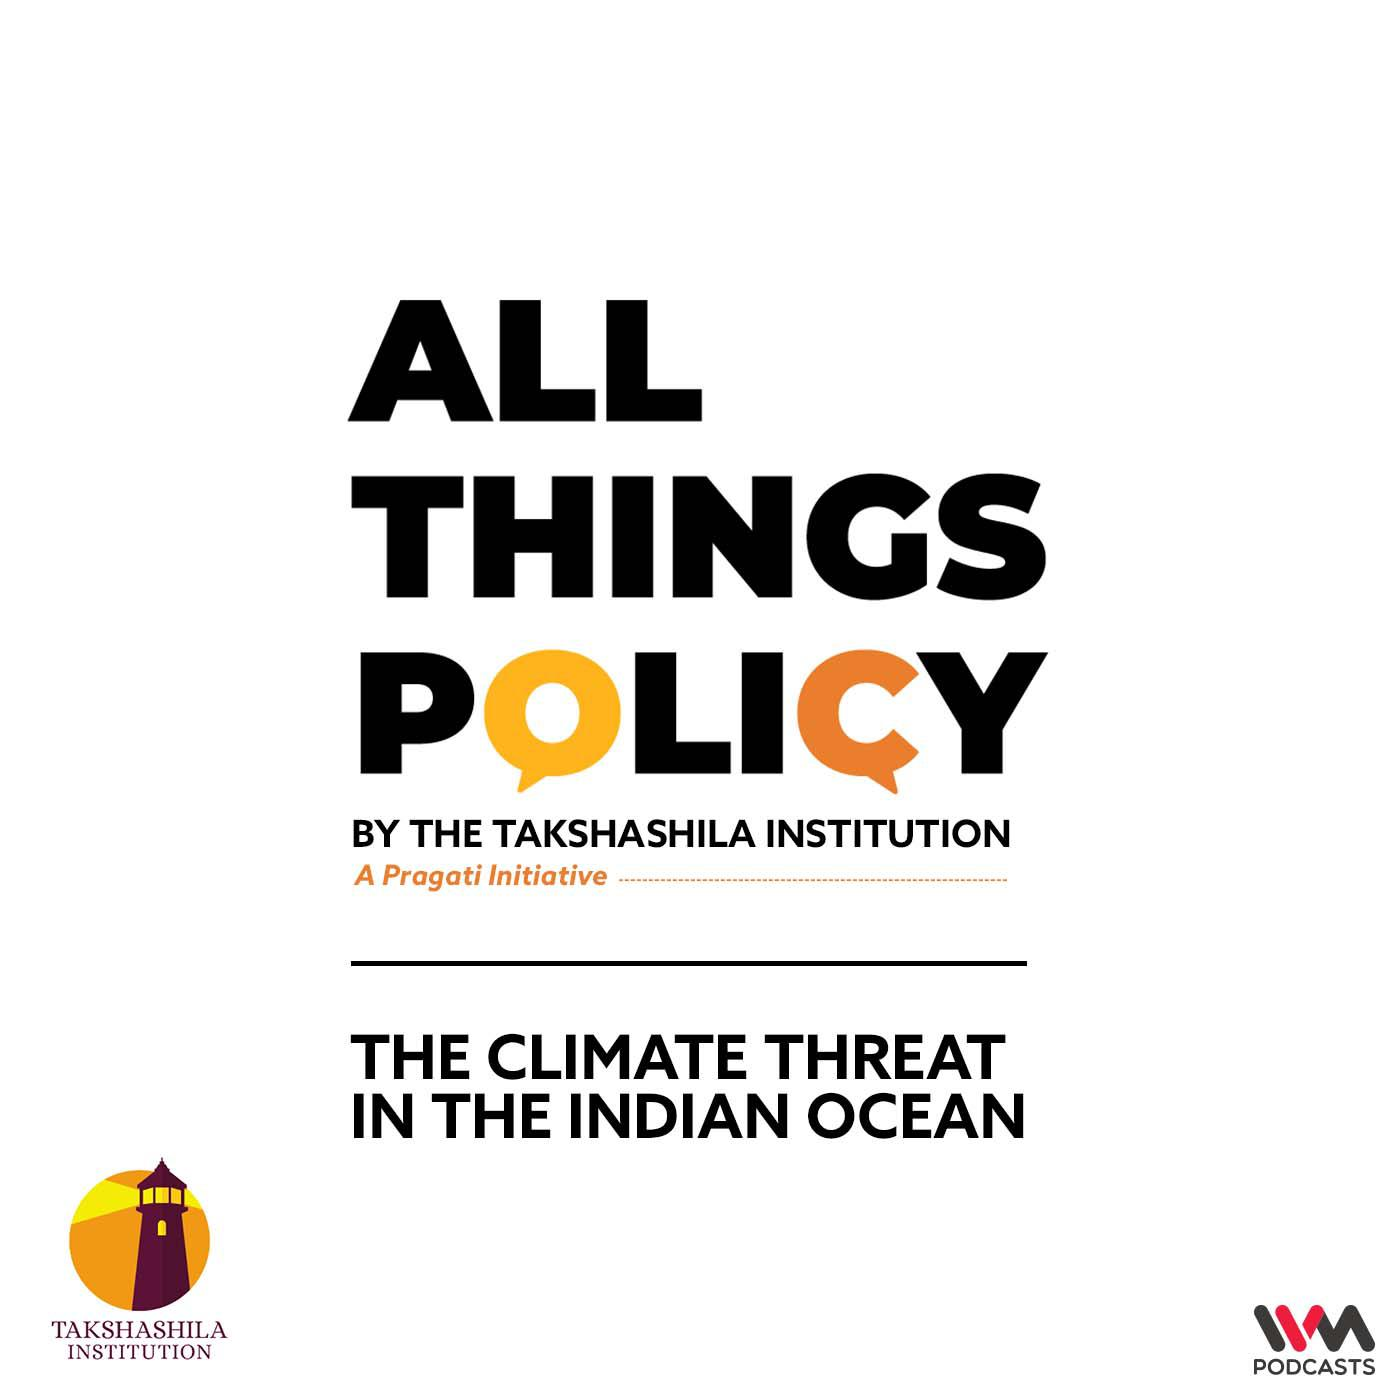 The Climate Threat in the Indian Ocean